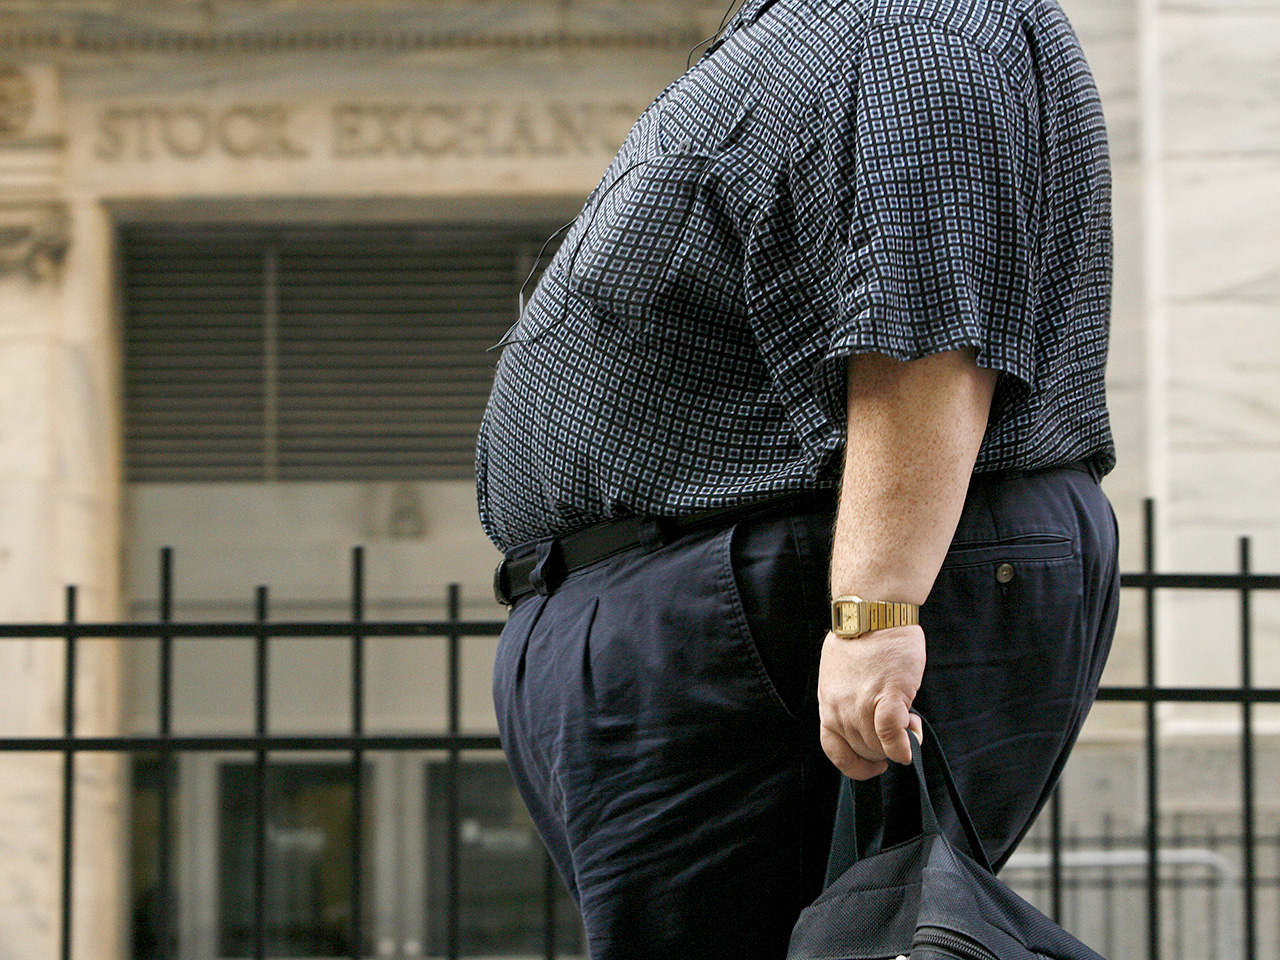 Could obesity be a bigger killer than we thought? A new study suggests so